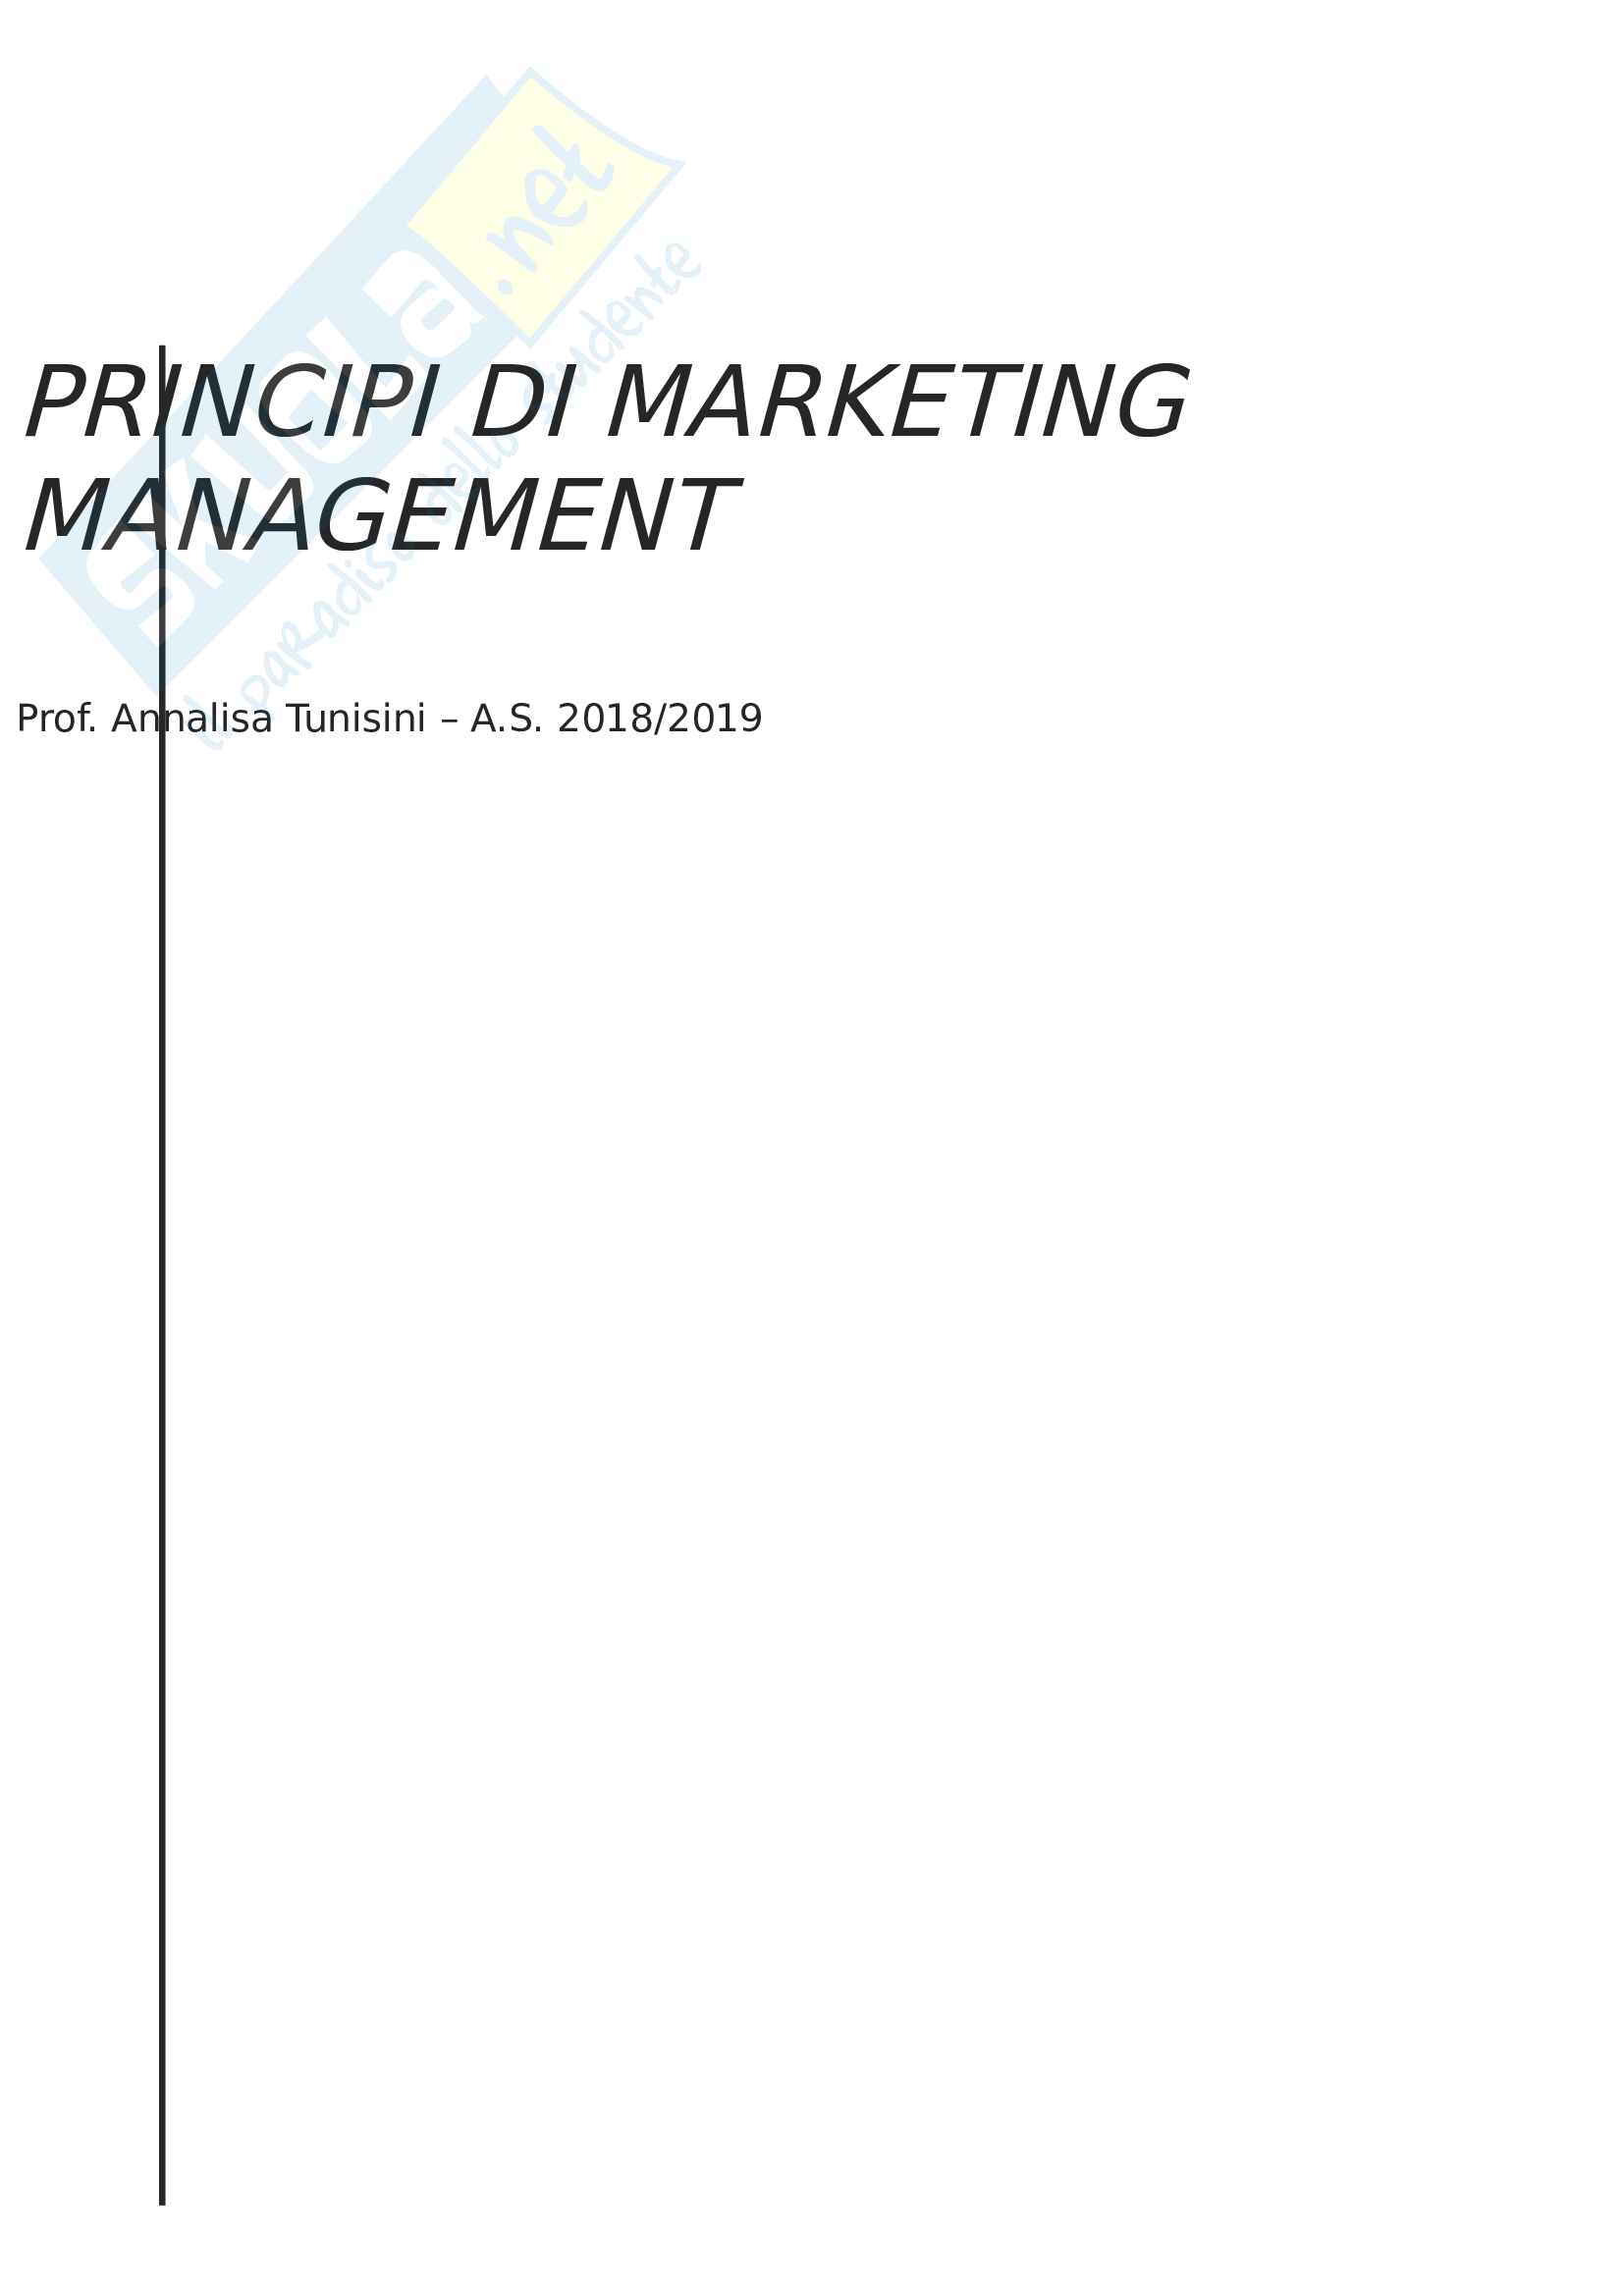 Appunti del corso Principi di Marketing Management, Prof. Annalisa Tunisini